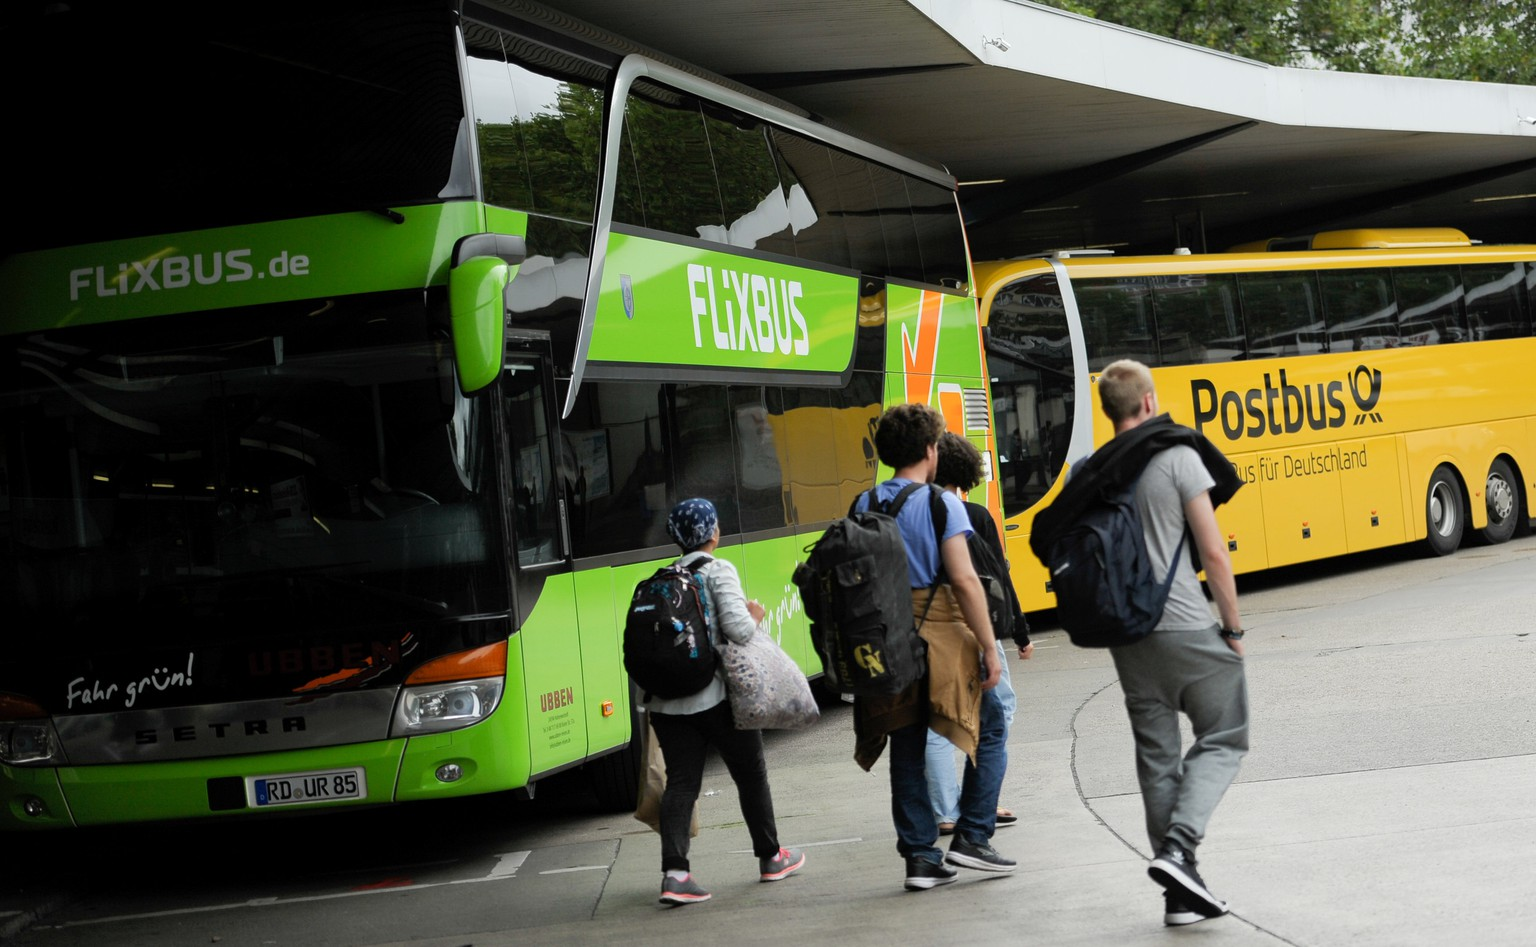 Passengers walk near Flixbus and Postbus busses at the main bus station (ZOB) in Berlin, Germany August 3, 2016. REUTERS/Stefanie Loos